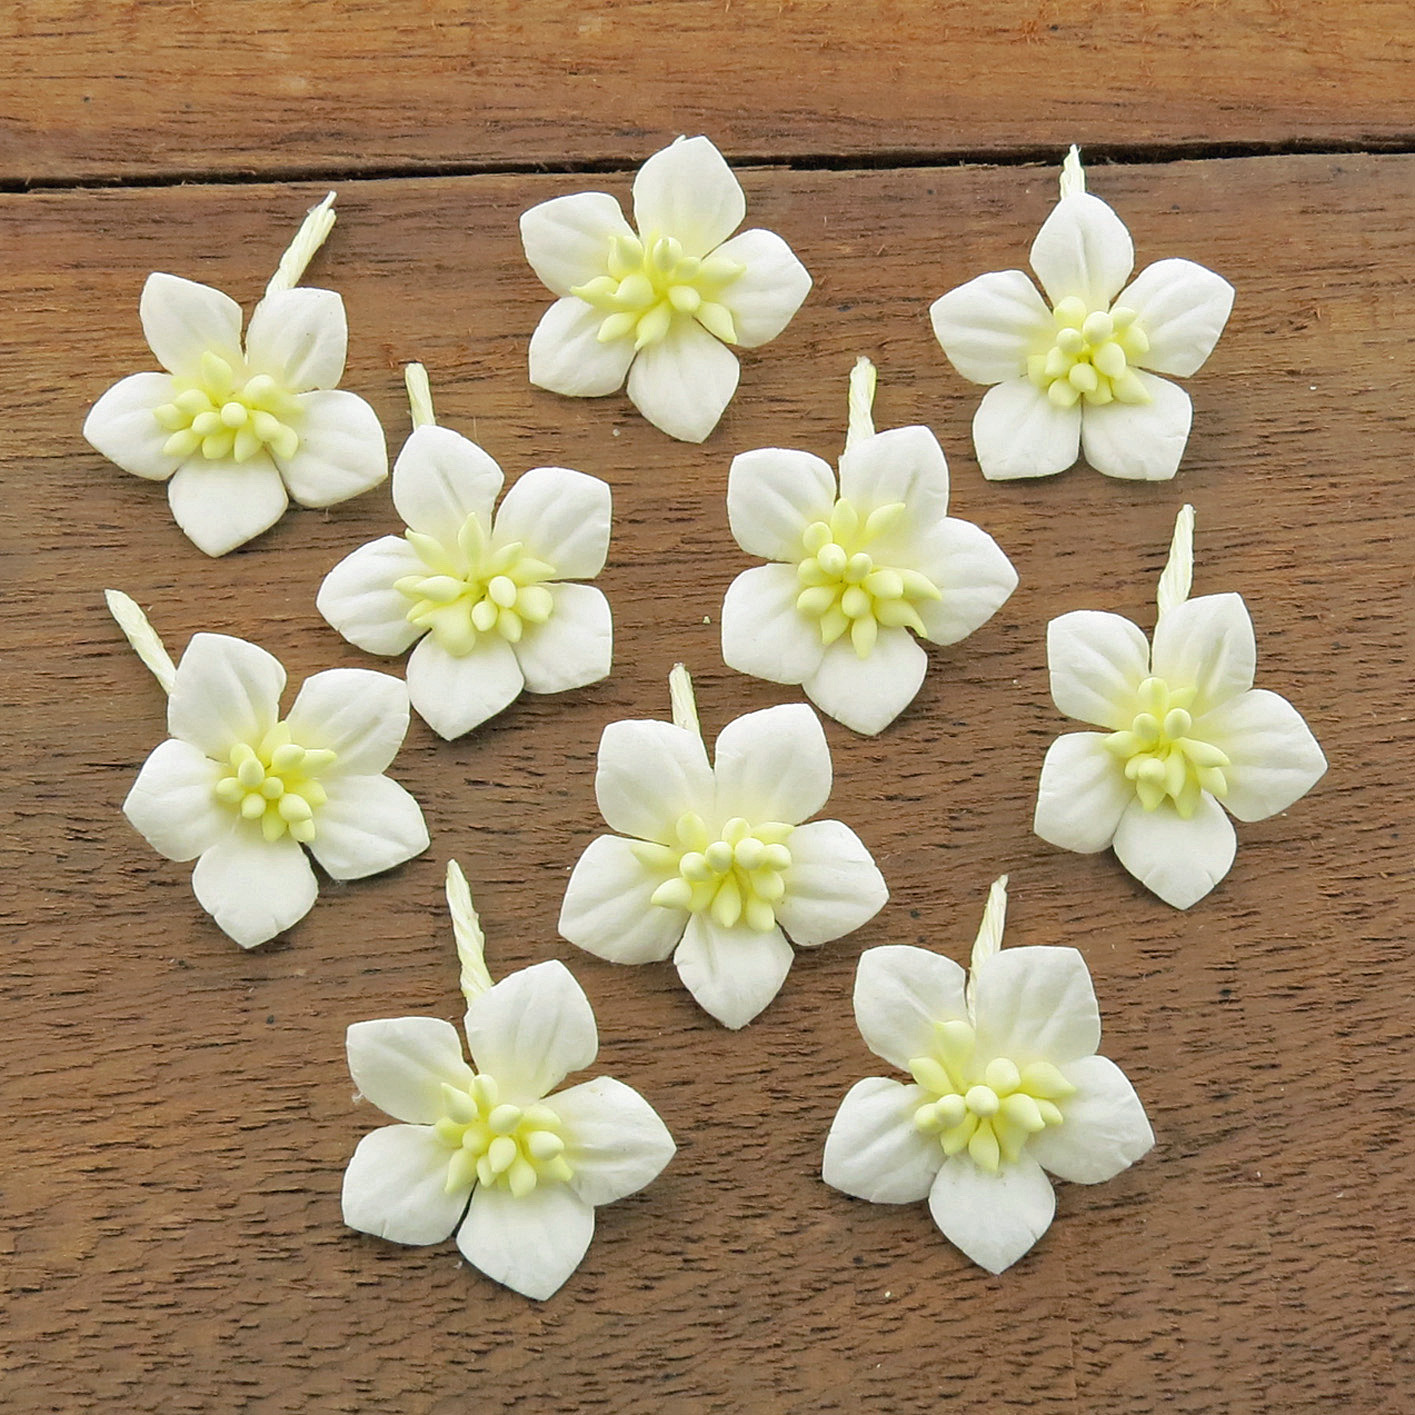 WHITE COTTON STEM MULBERRY PAPER FLOWERS - SET C